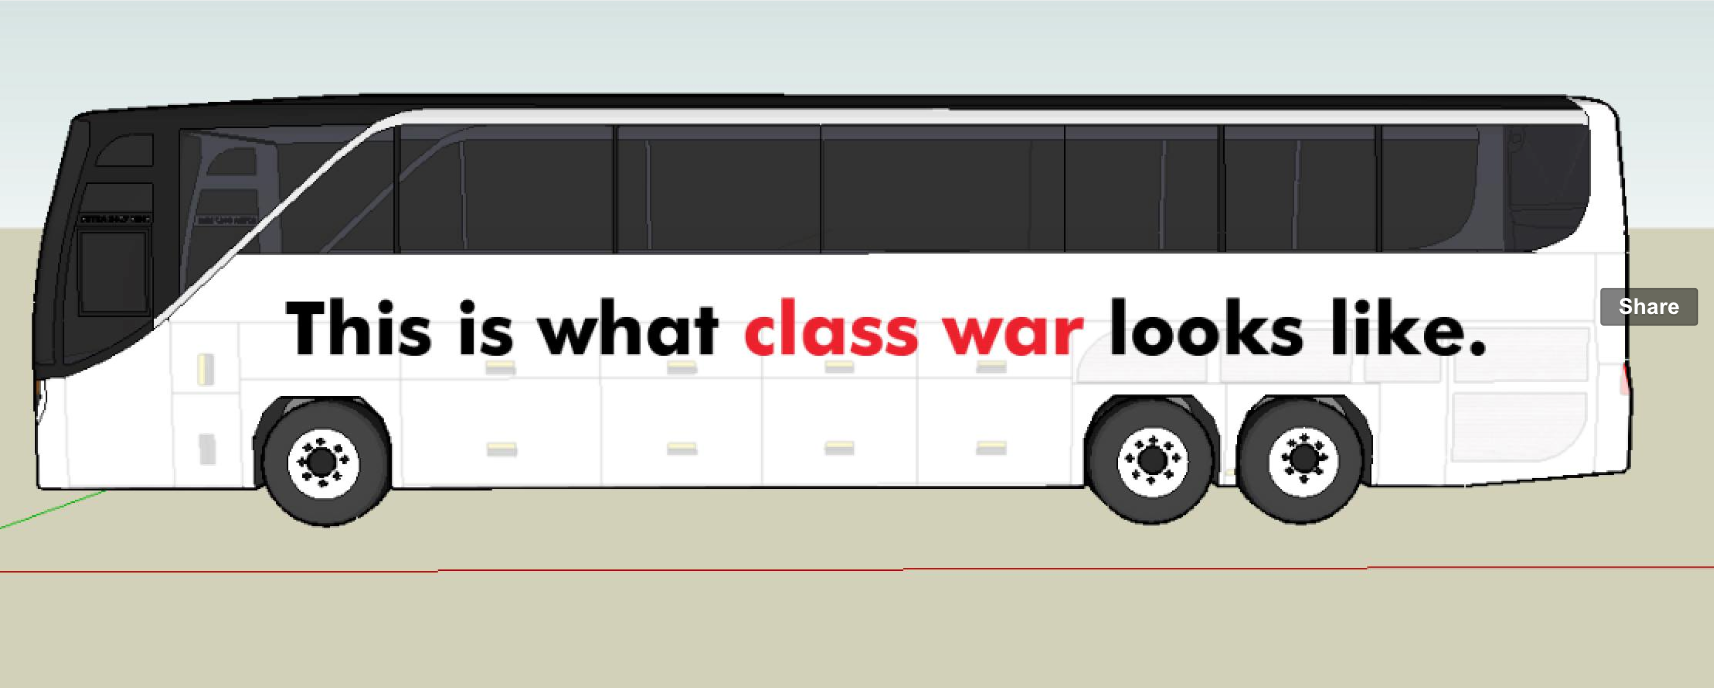 This Is What Class War Looks Like by Anna Gray & Ryan Wilson Paulsen